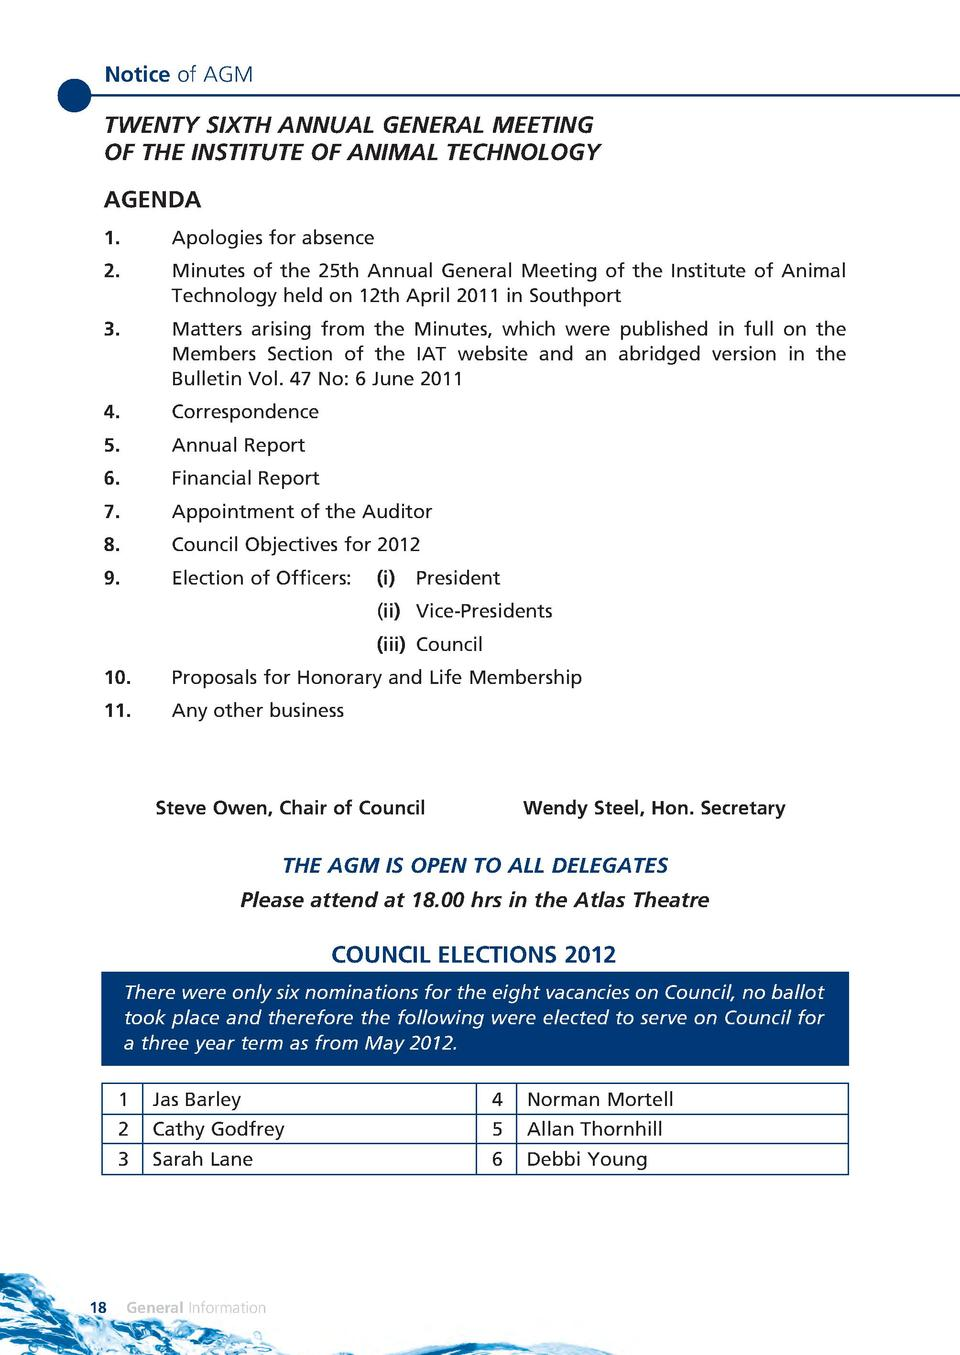 Notice of AGM  TWENTY SIXTH ANNUAL GENERAL MEETING OF THE INSTITUTE OF ANIMAL TECHNOLOGY AGENDA 1.   Apologies for absence...